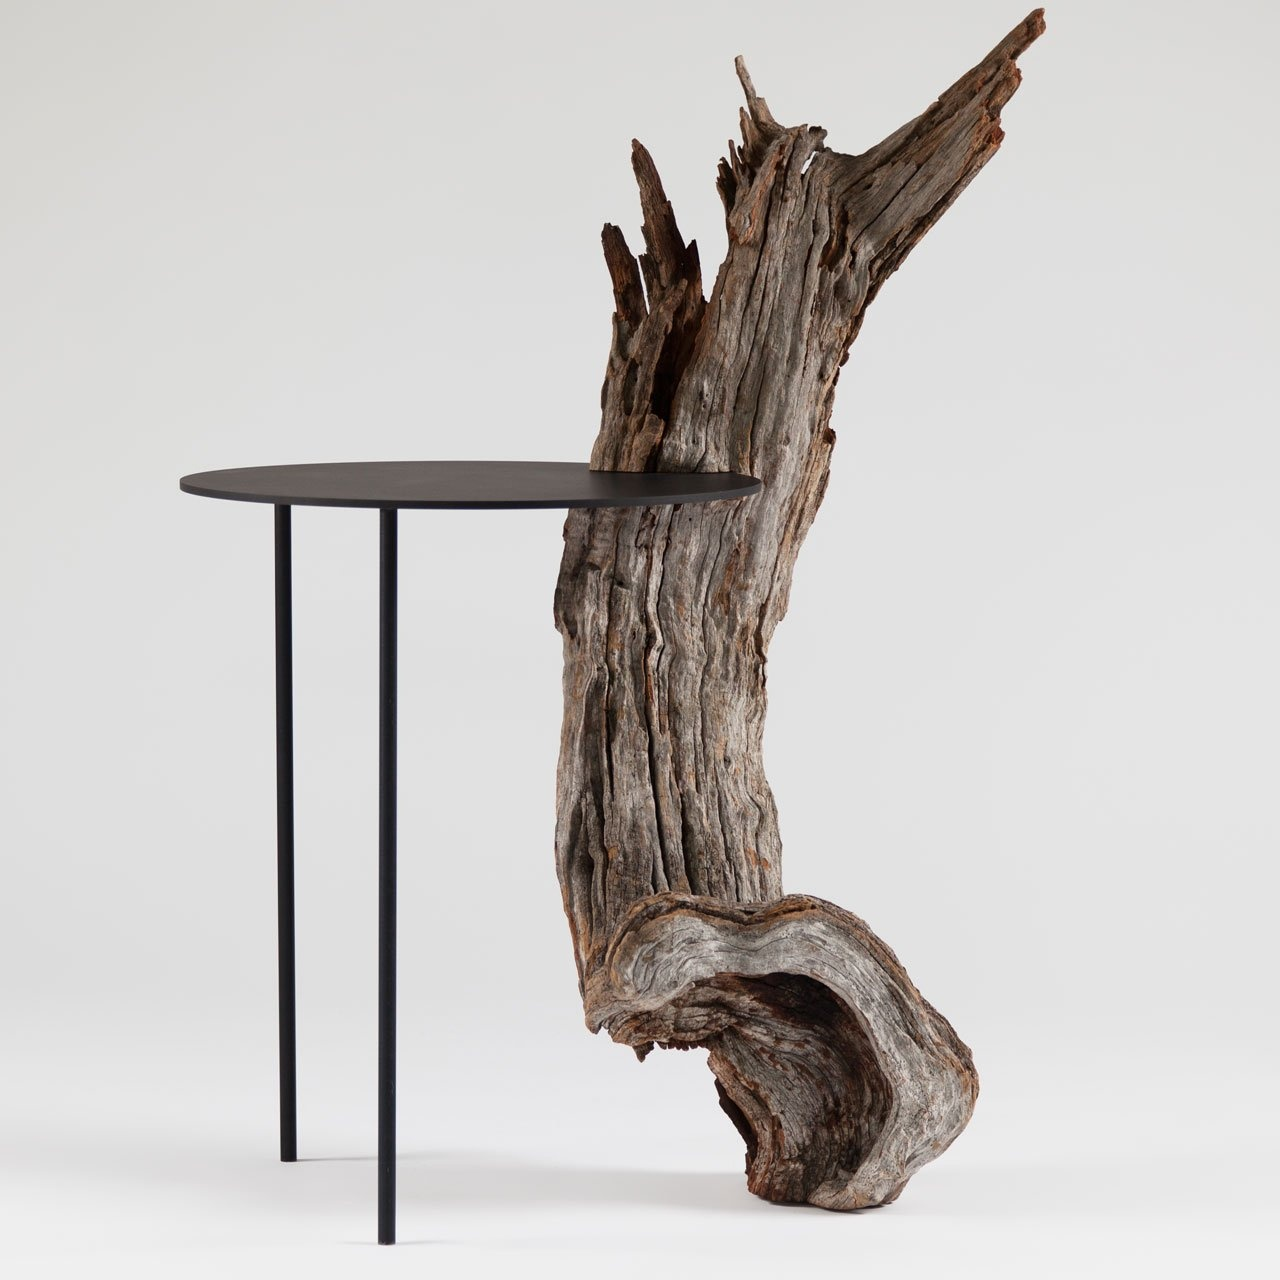 toms_alonso_furniture_01_01